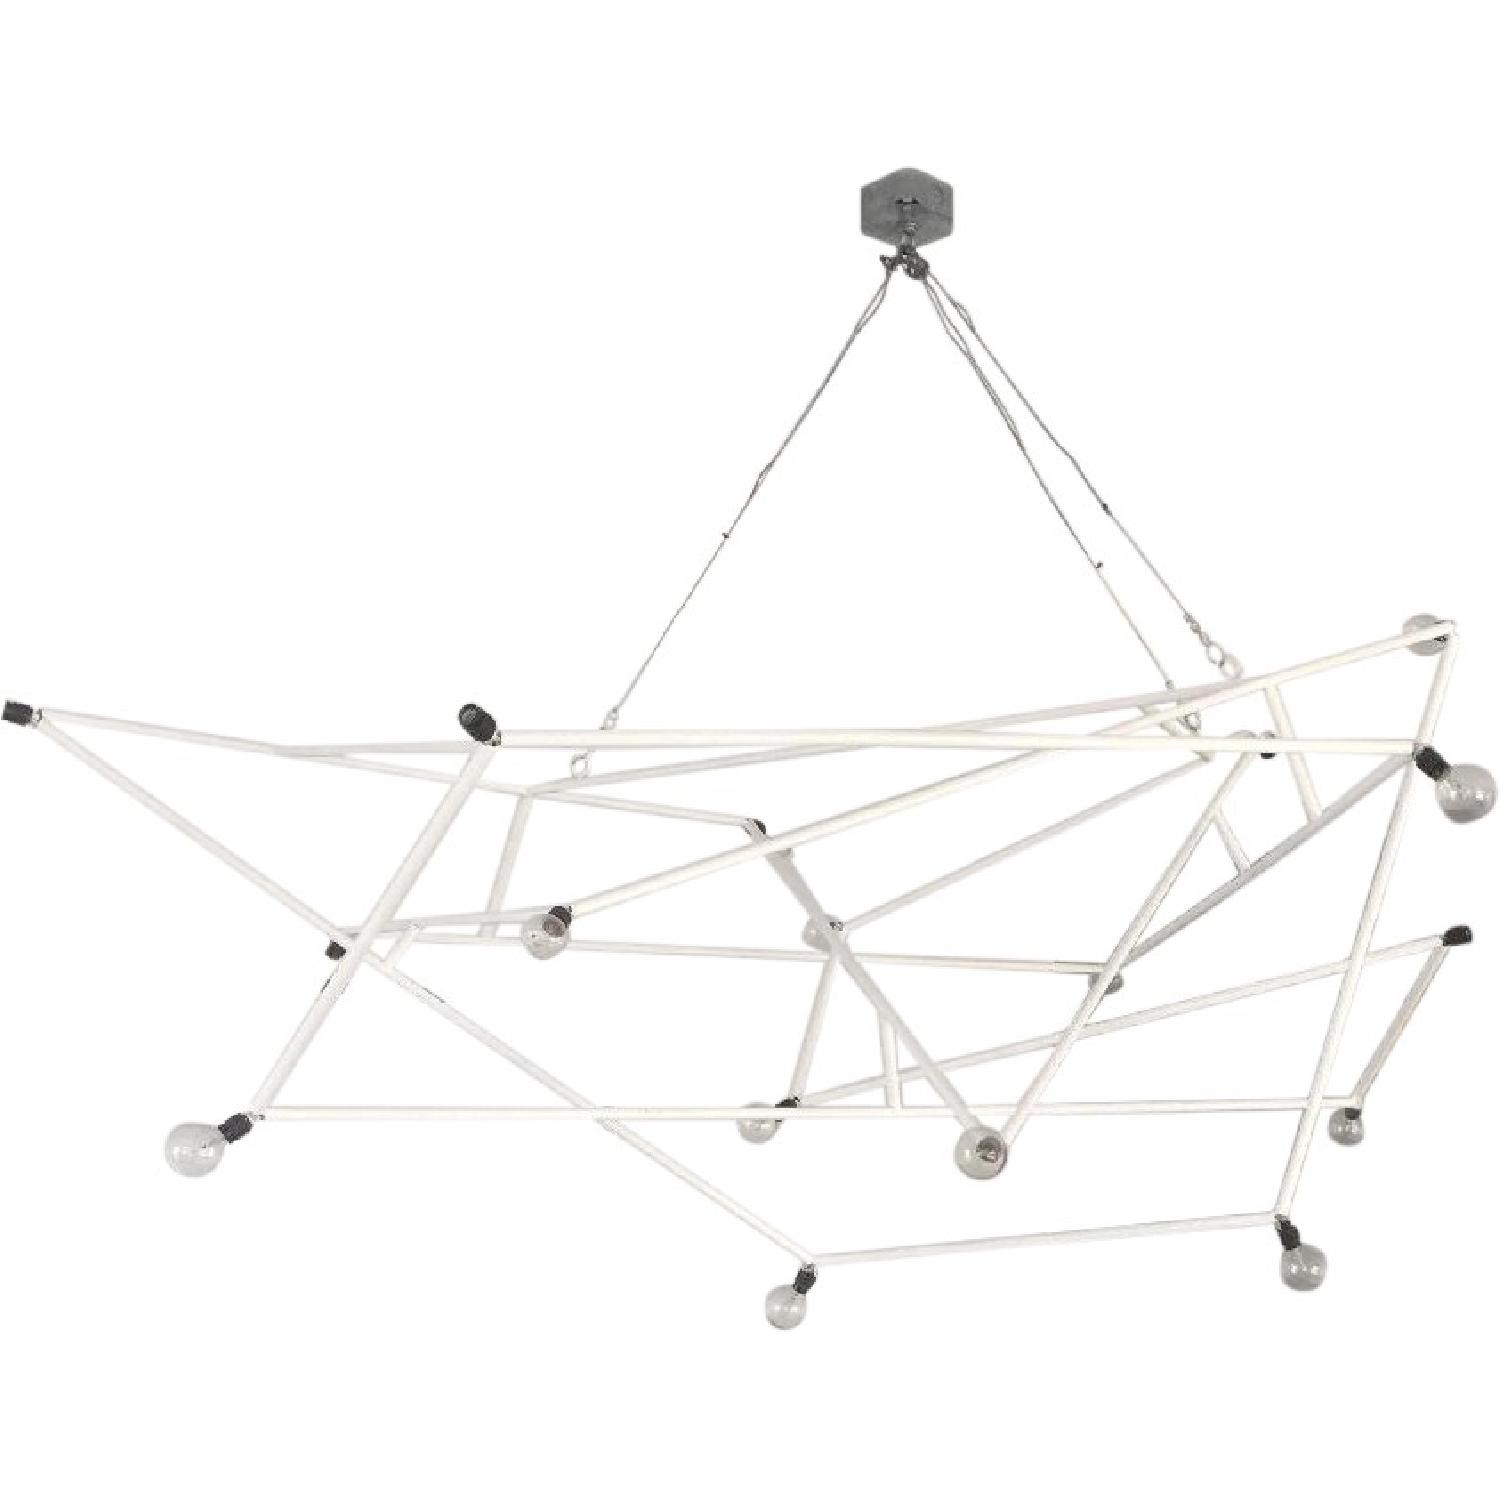 ABC Carpet & Home Powder Coated White Architectural Chandelier - image-0